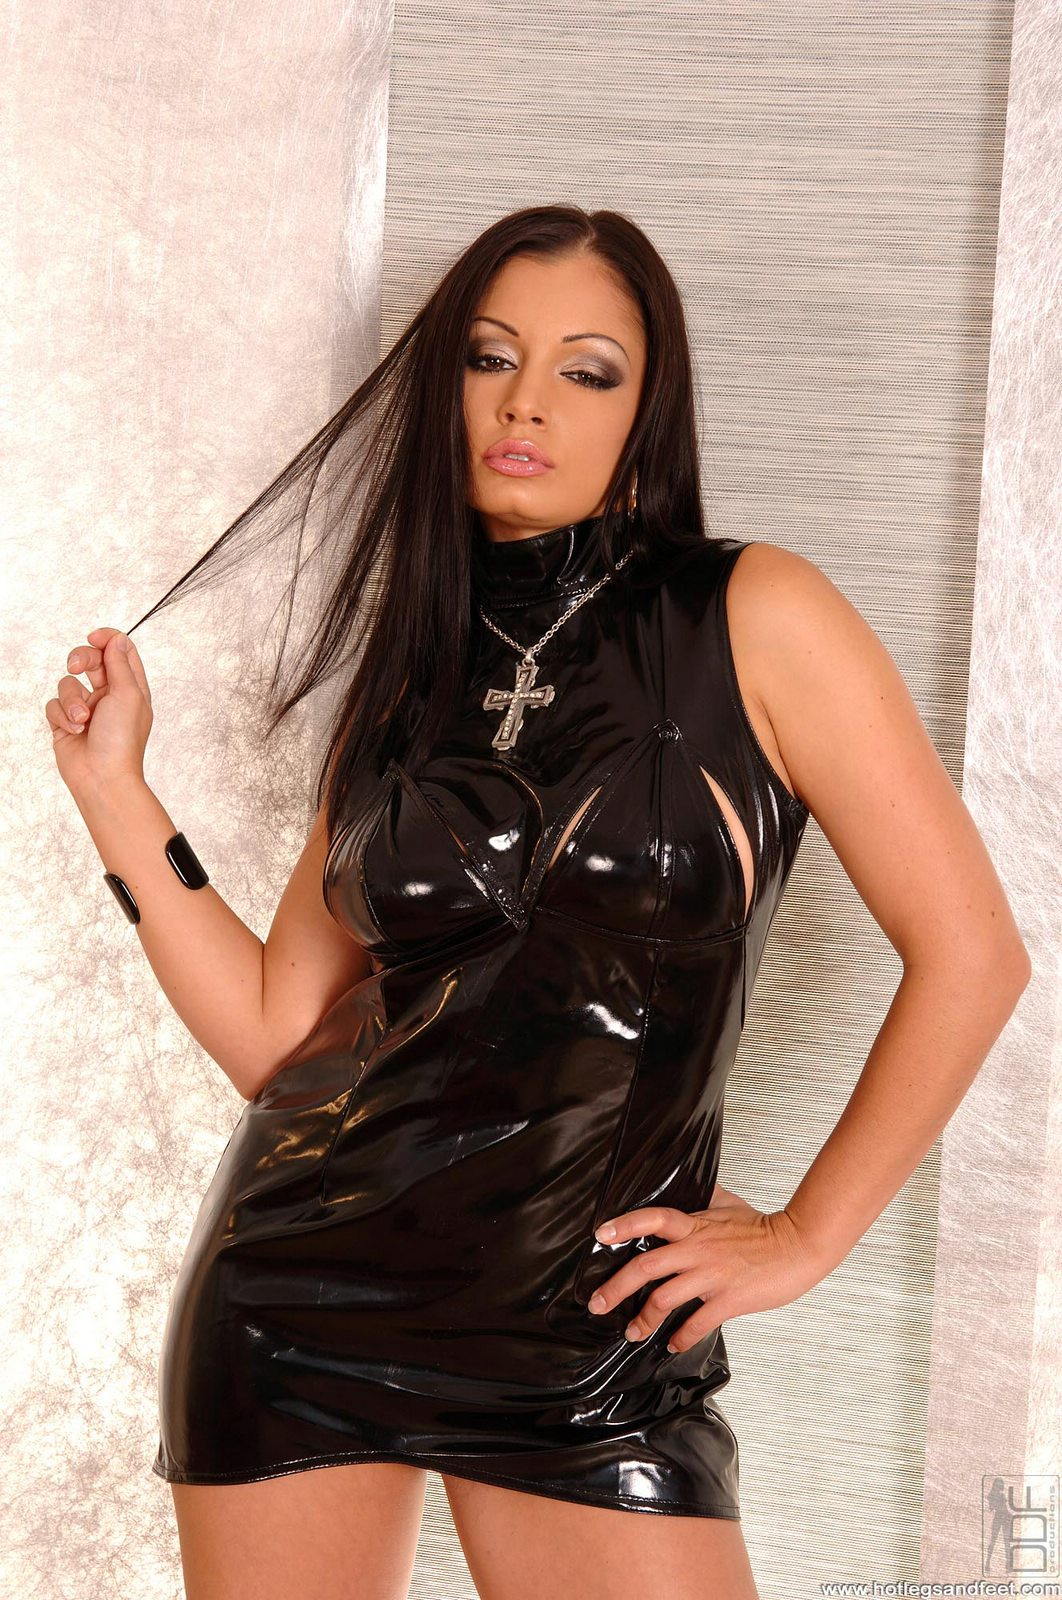 aria giovanni in sexy latex outfit showing off her legs